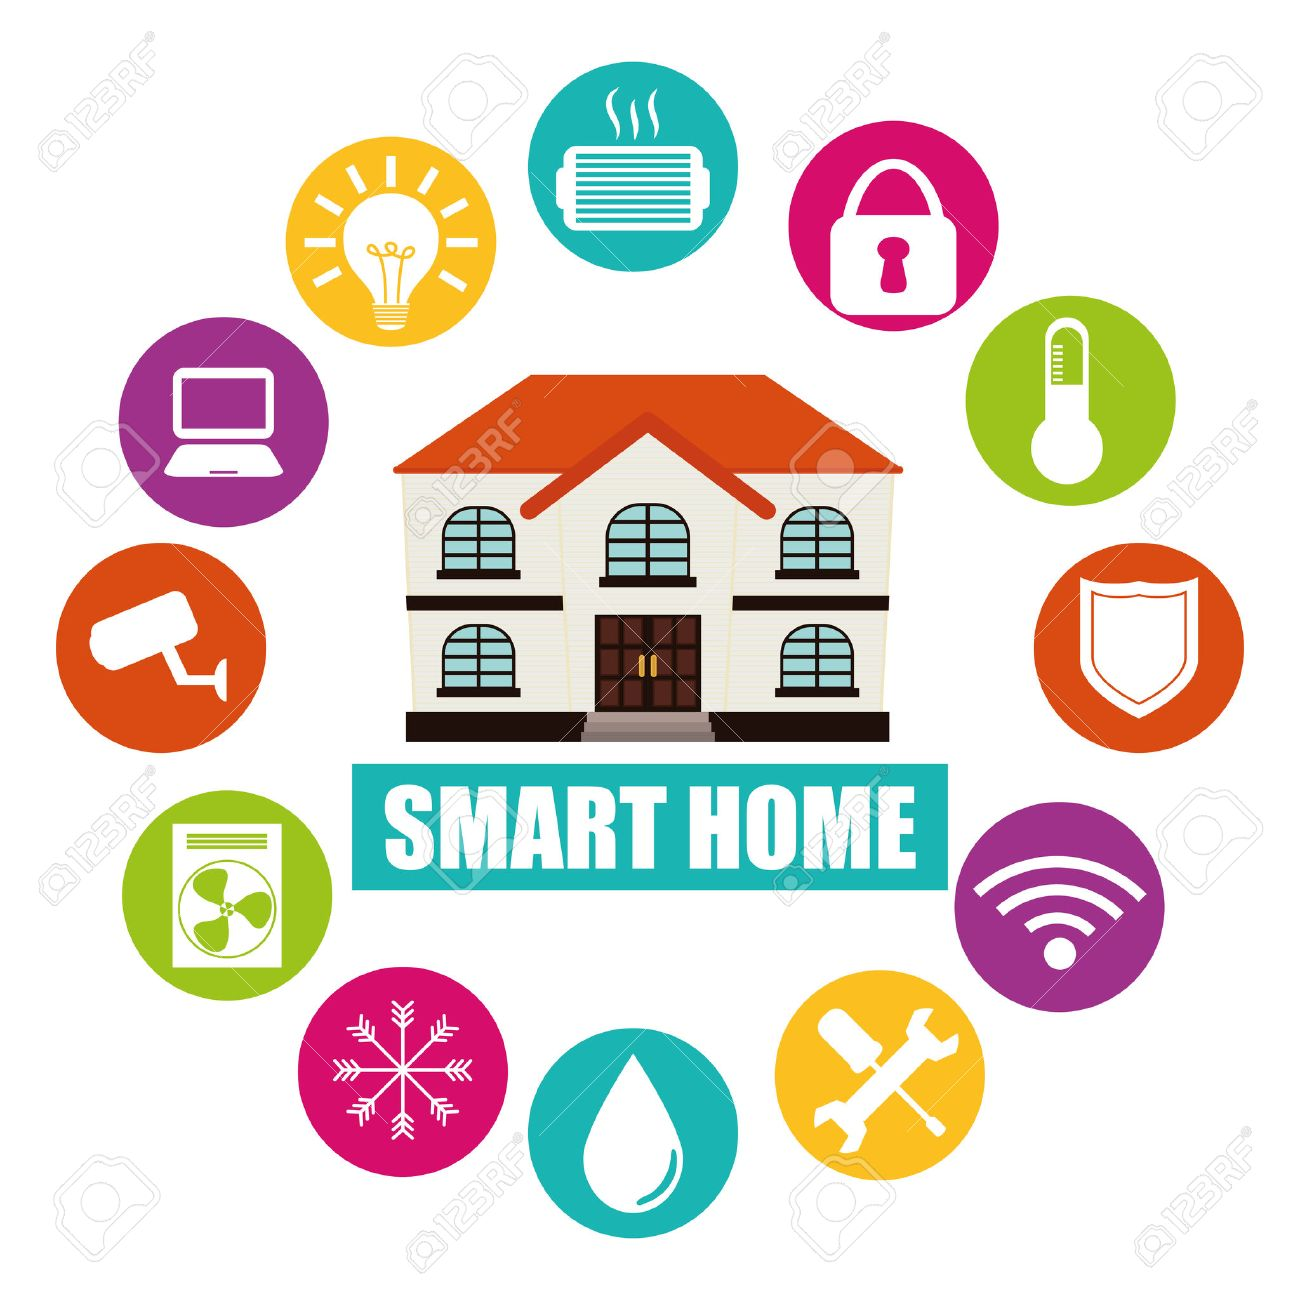 Smart Home Design Vector Illustration Graphic Royalty Free